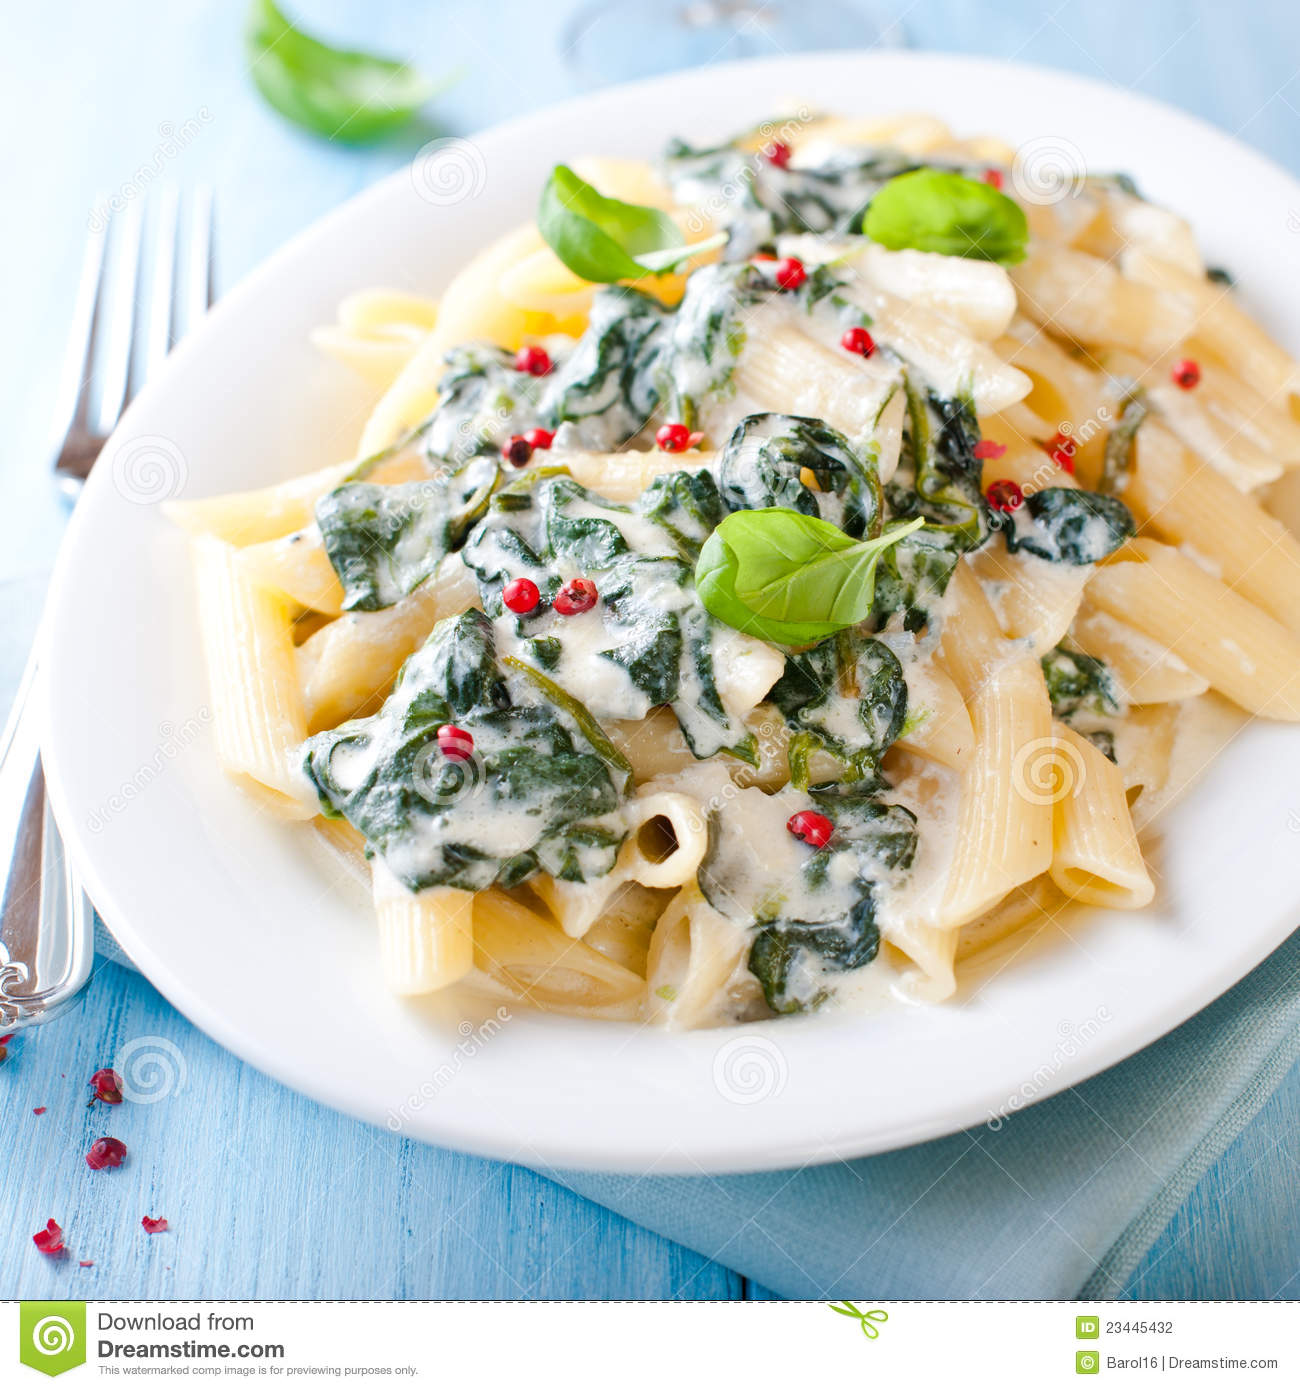 Penne with Blue Cheese, Tomatoes, and Spinach